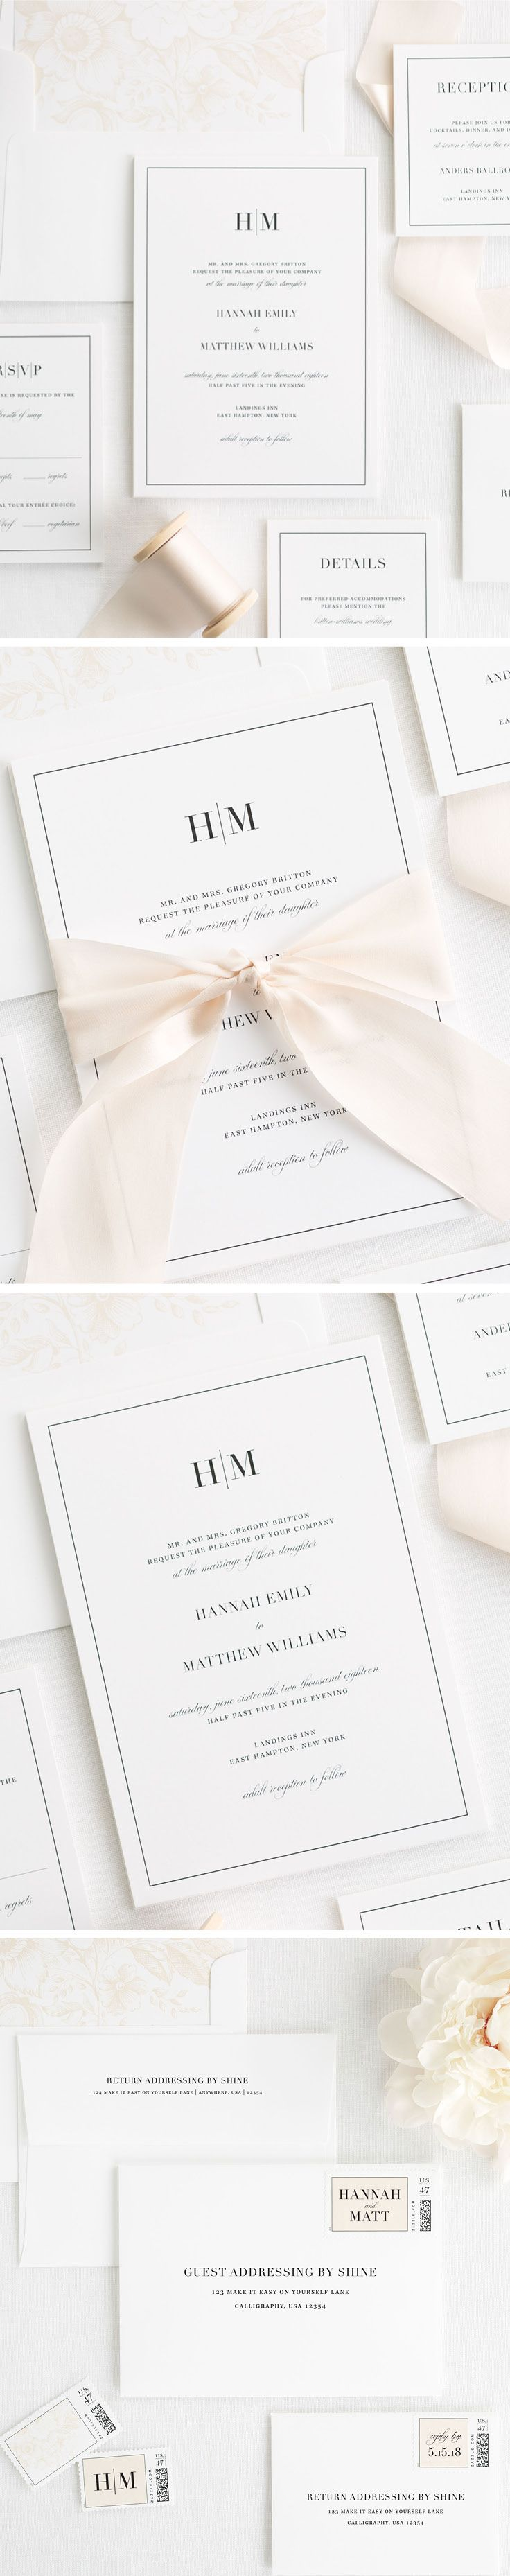 Create your perfect look from start to finish! Our Glam Monogram wedding invitation is the perfect mix of romance and elegance. Tie your look together with our custom dyed 100% silk ribbon in cashmere, custom postage and addressing services. Click here to create the wedding invitations of your dreams!